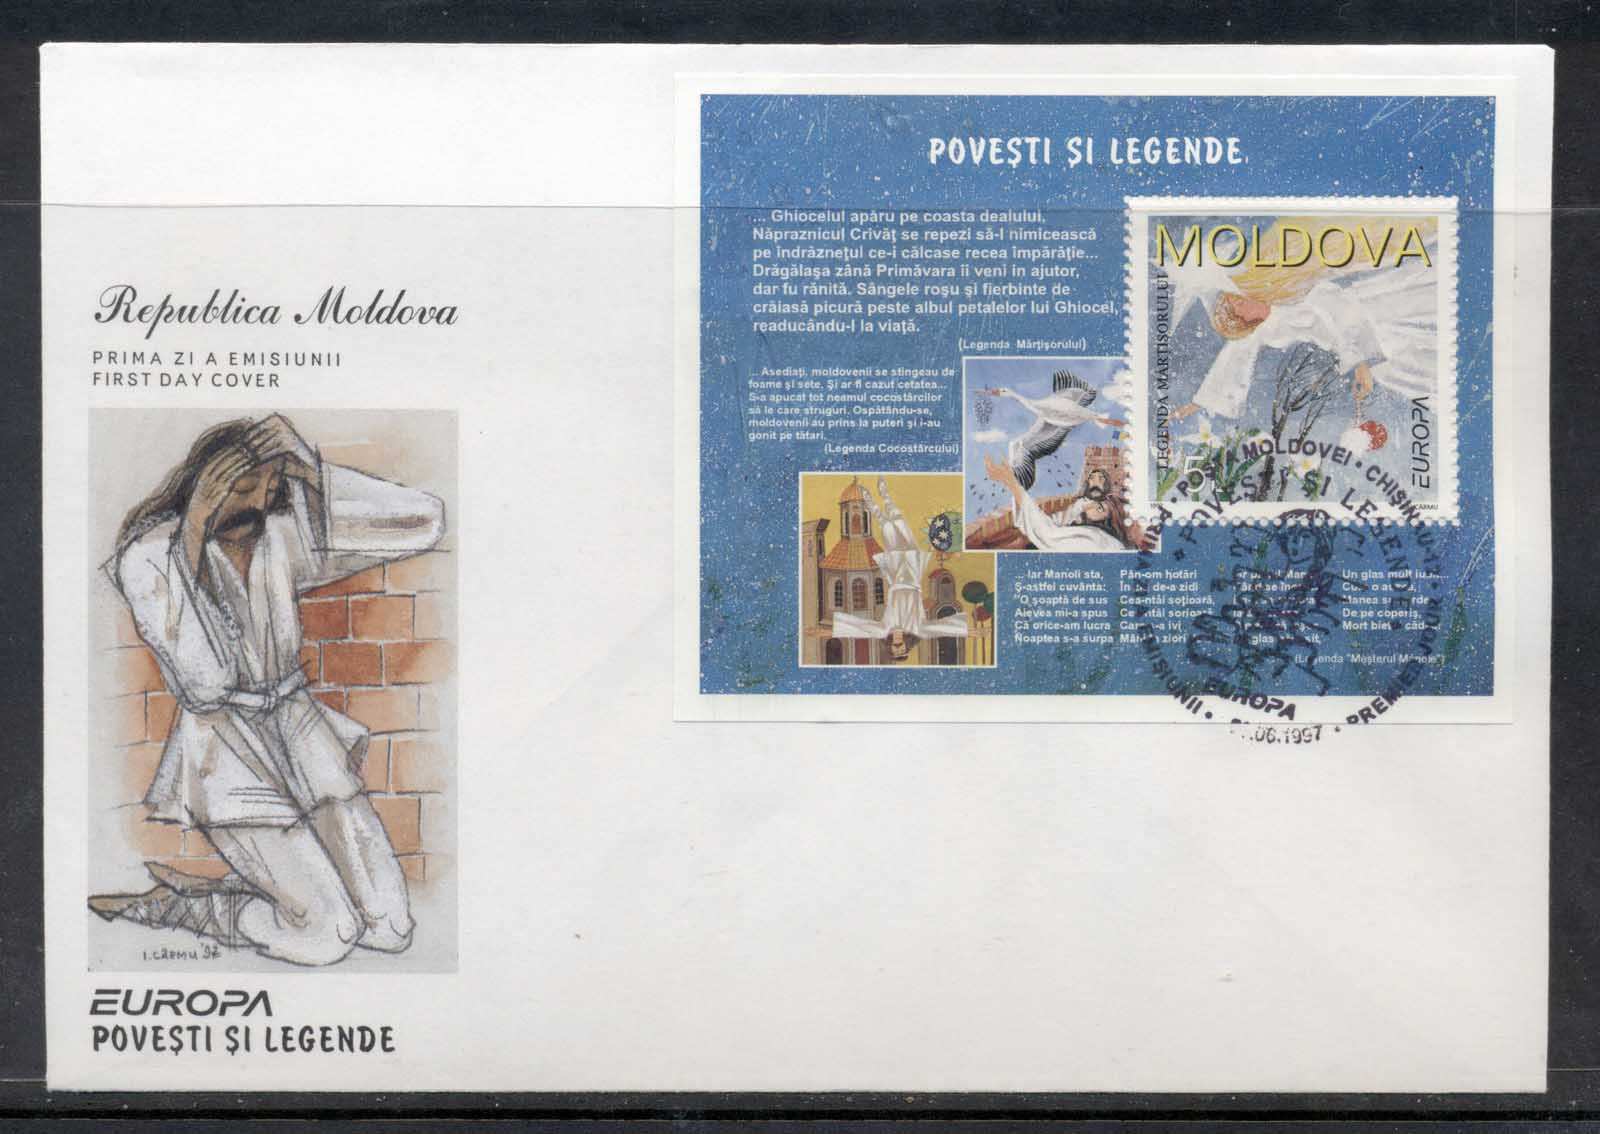 Moldova 1997 Europa Myths & legends MS FDC